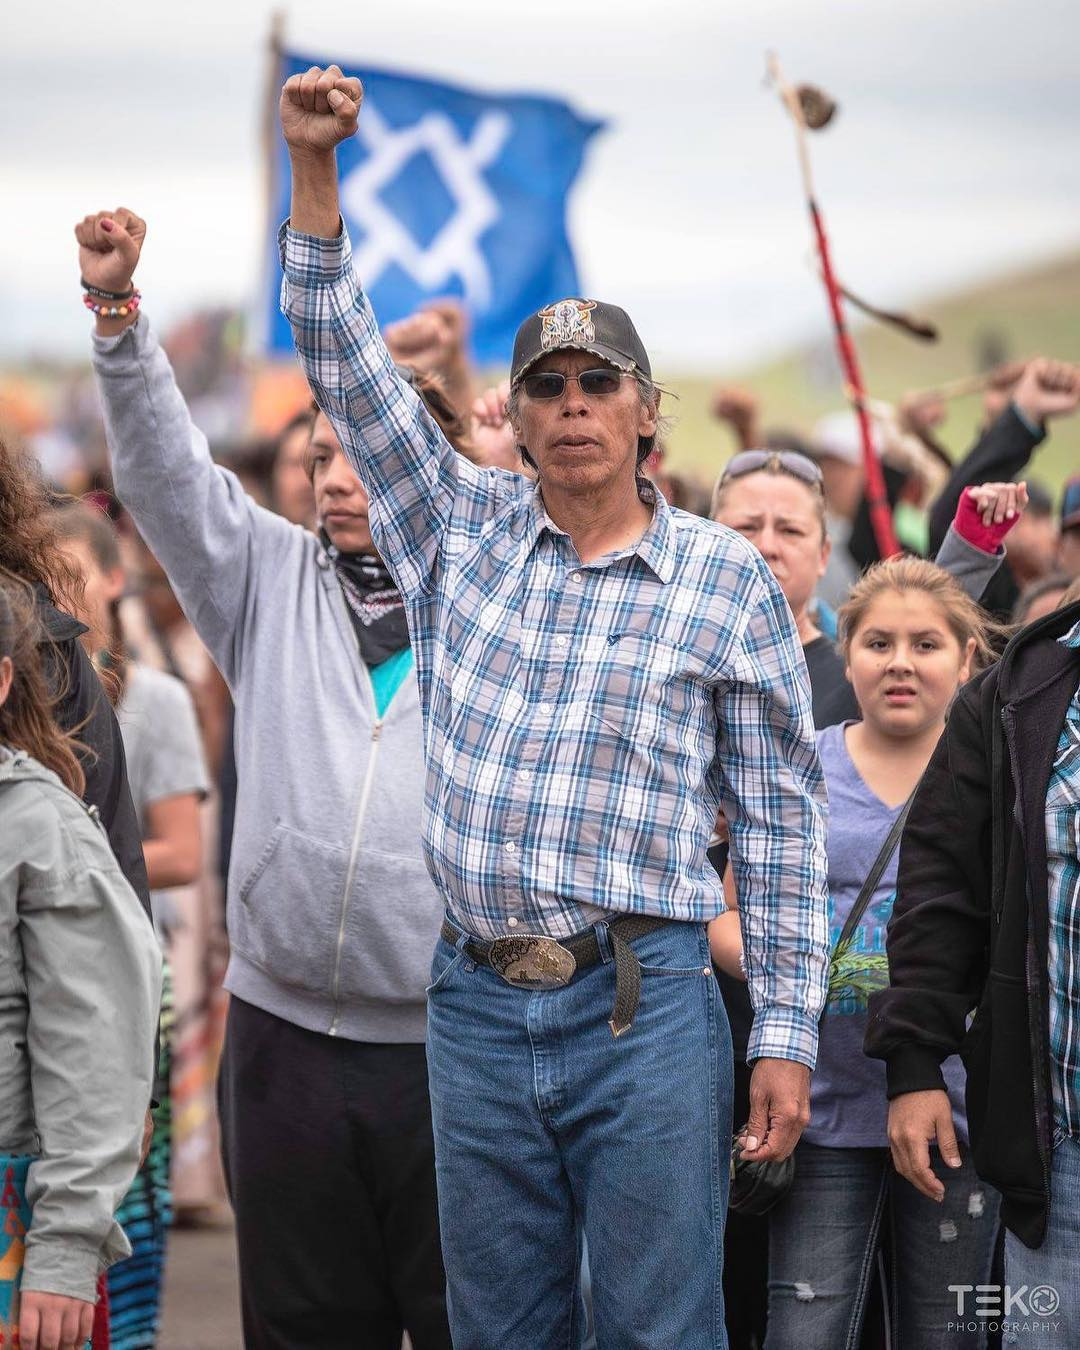 """""""One of my favorite images I took at Standing Rock 2016"""" - Teko Photography"""